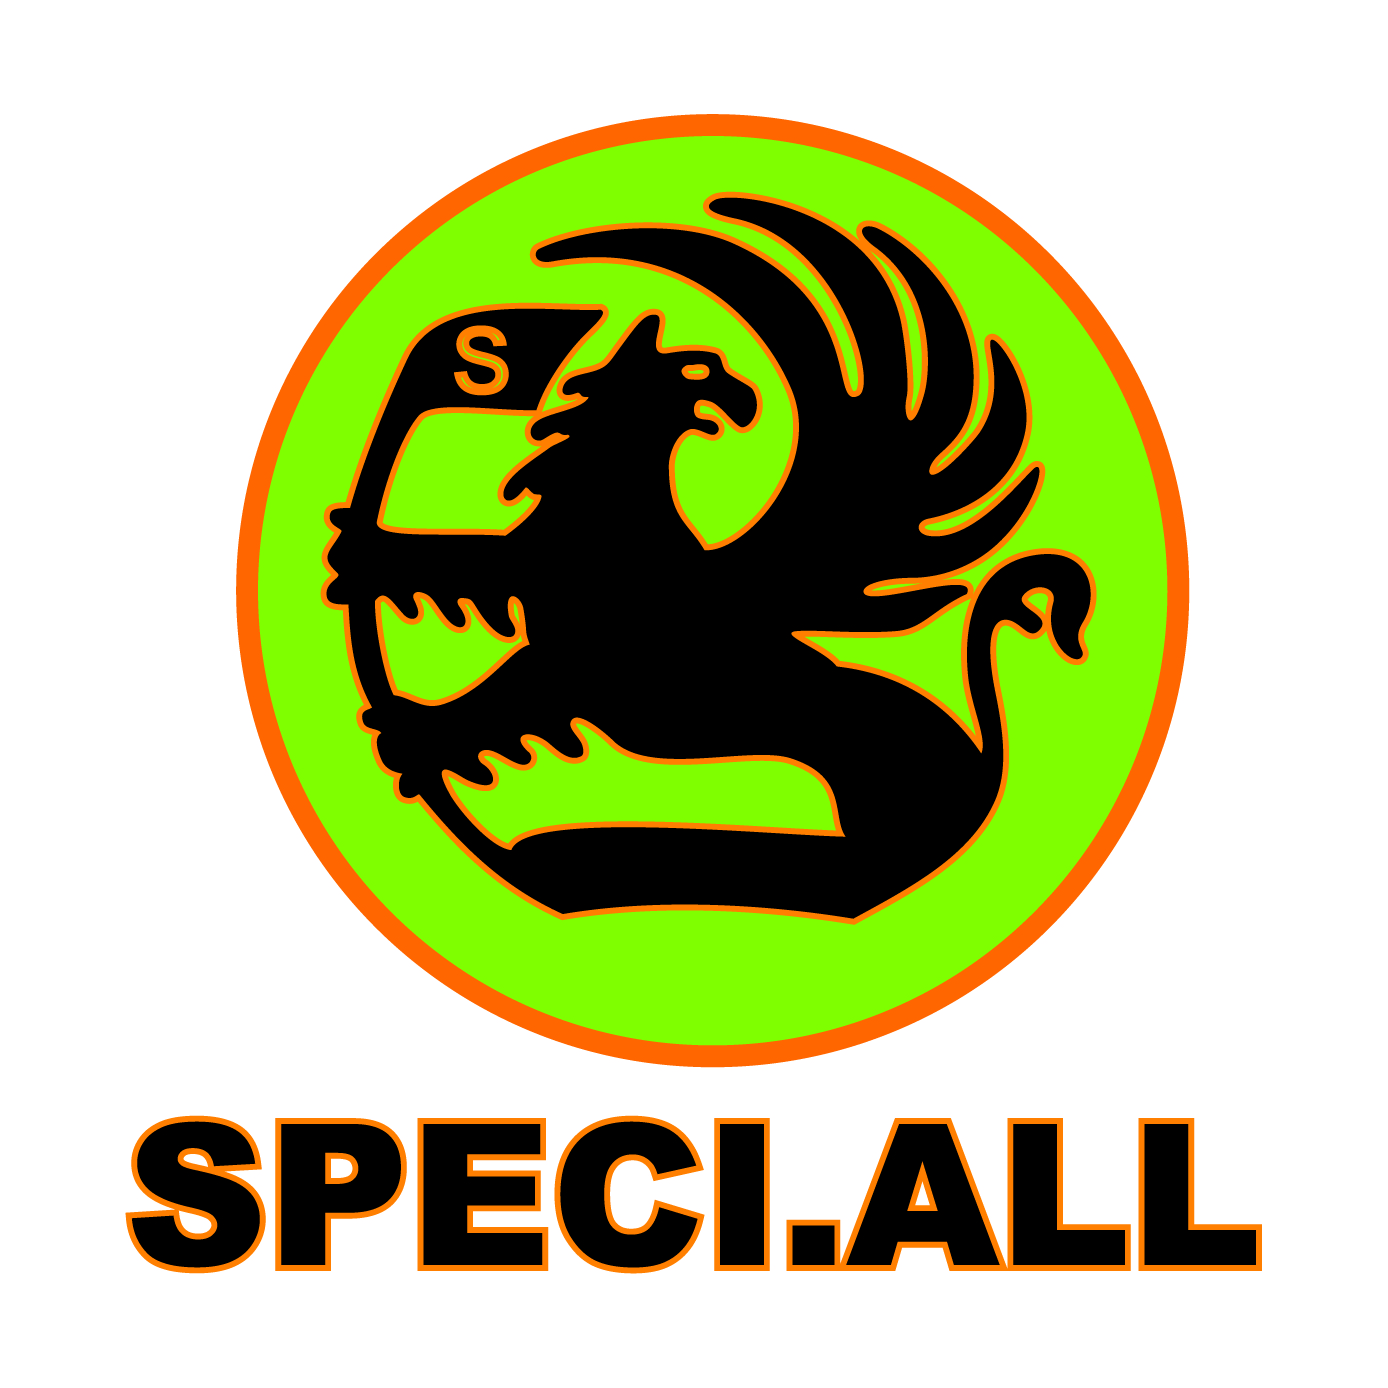 speci-all logo indiz